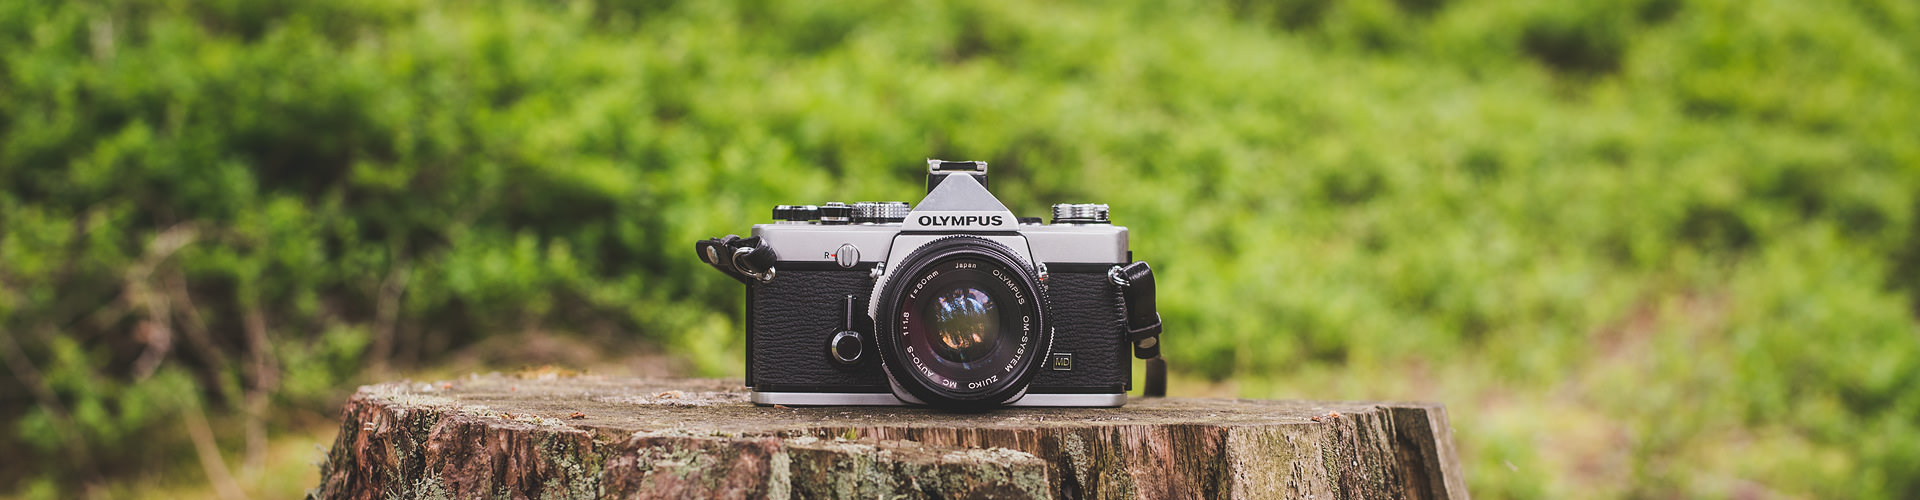 Camera Dslr Camera Courses photography courses aberdeen toby armishaw complete beginners dslr in aberdeen